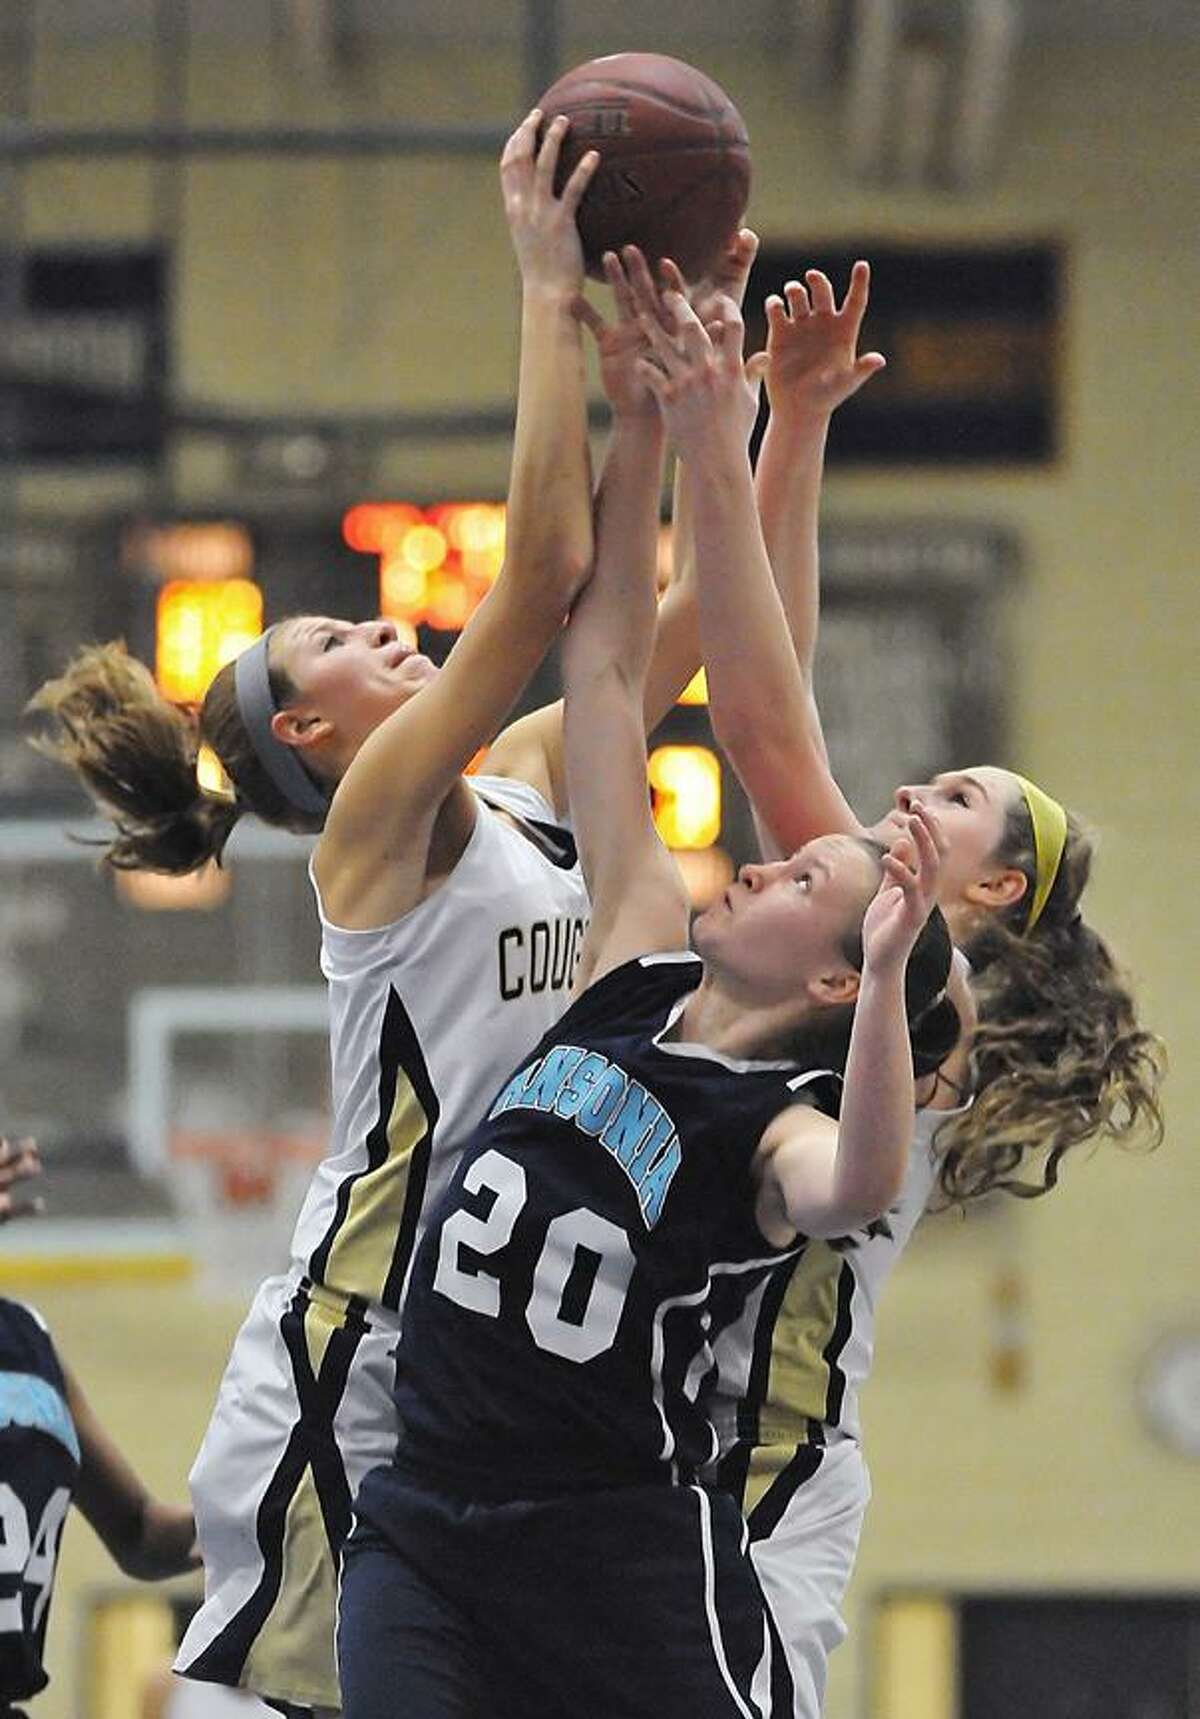 Catherine Avalone/The Middletown Press Haddam-Killingworth junior forward Kiley Anderson, at left and junior forward Lauren McCann battle Ansonia senior guard Tierney Lawlor Thursday night at the H-K Fieldhouse in Higganum. Anderson grabbed 9 rebounds and McCann pulled down 7 leading the Cougars in a 52-37 win over the Chargers in the Class M CIAC Quarterfinal game.